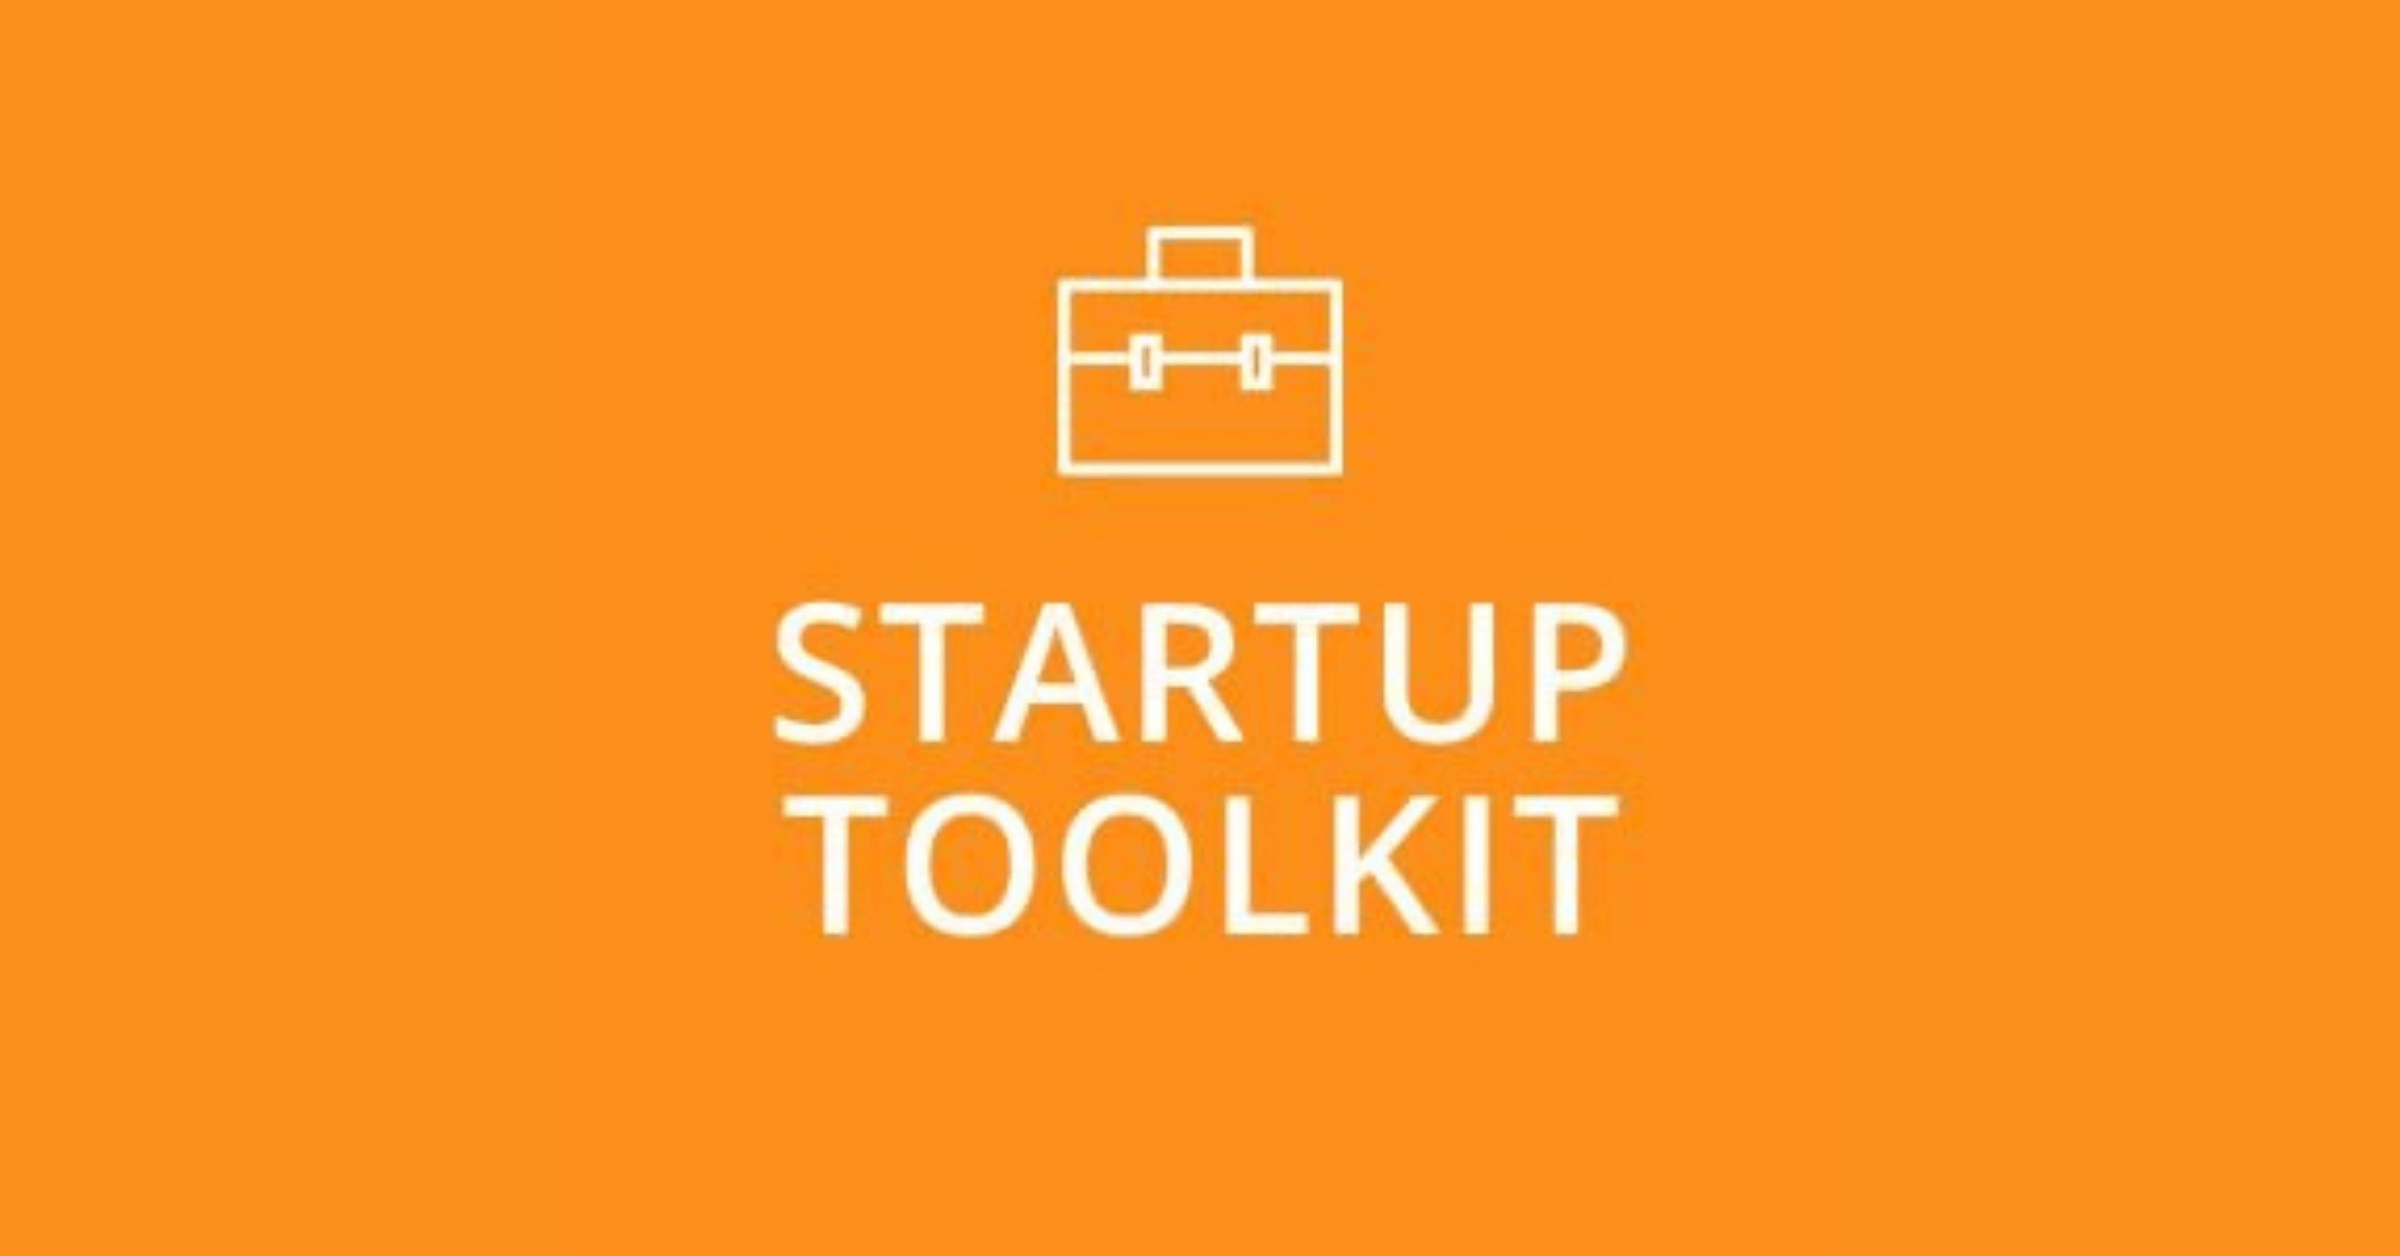 Startup Toolkit – Free tools to help fund and grow your business.